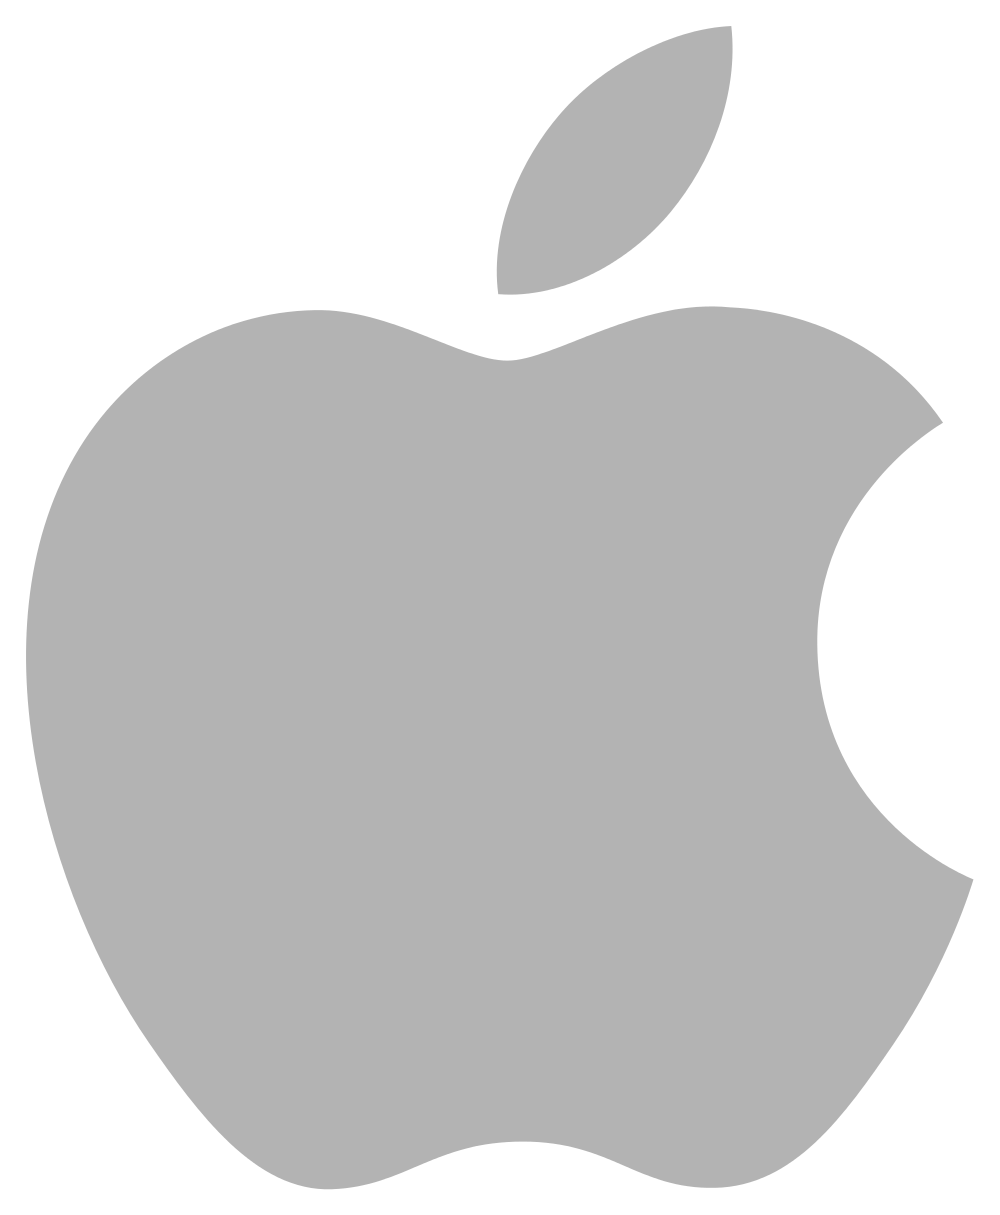 Logo Apple Scalable Vector Graphics.